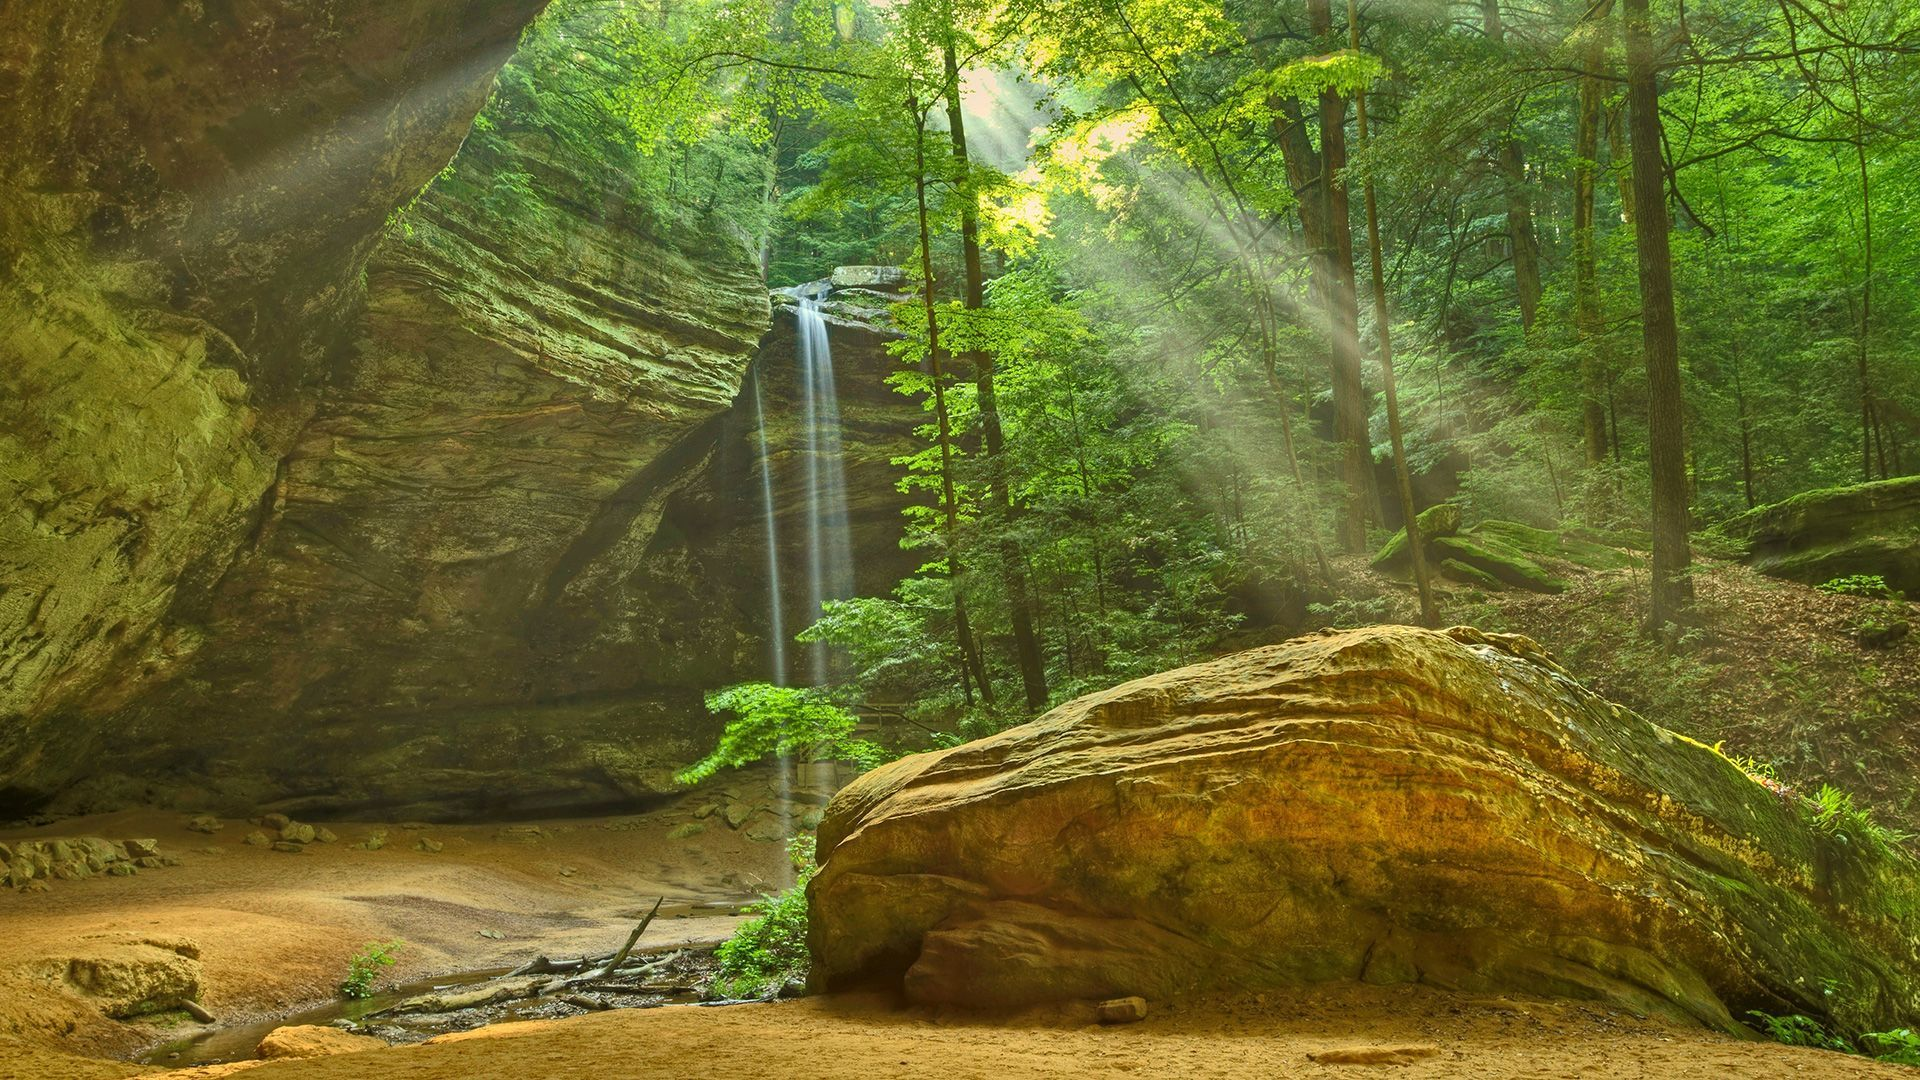 The Nests in Hocking Hills